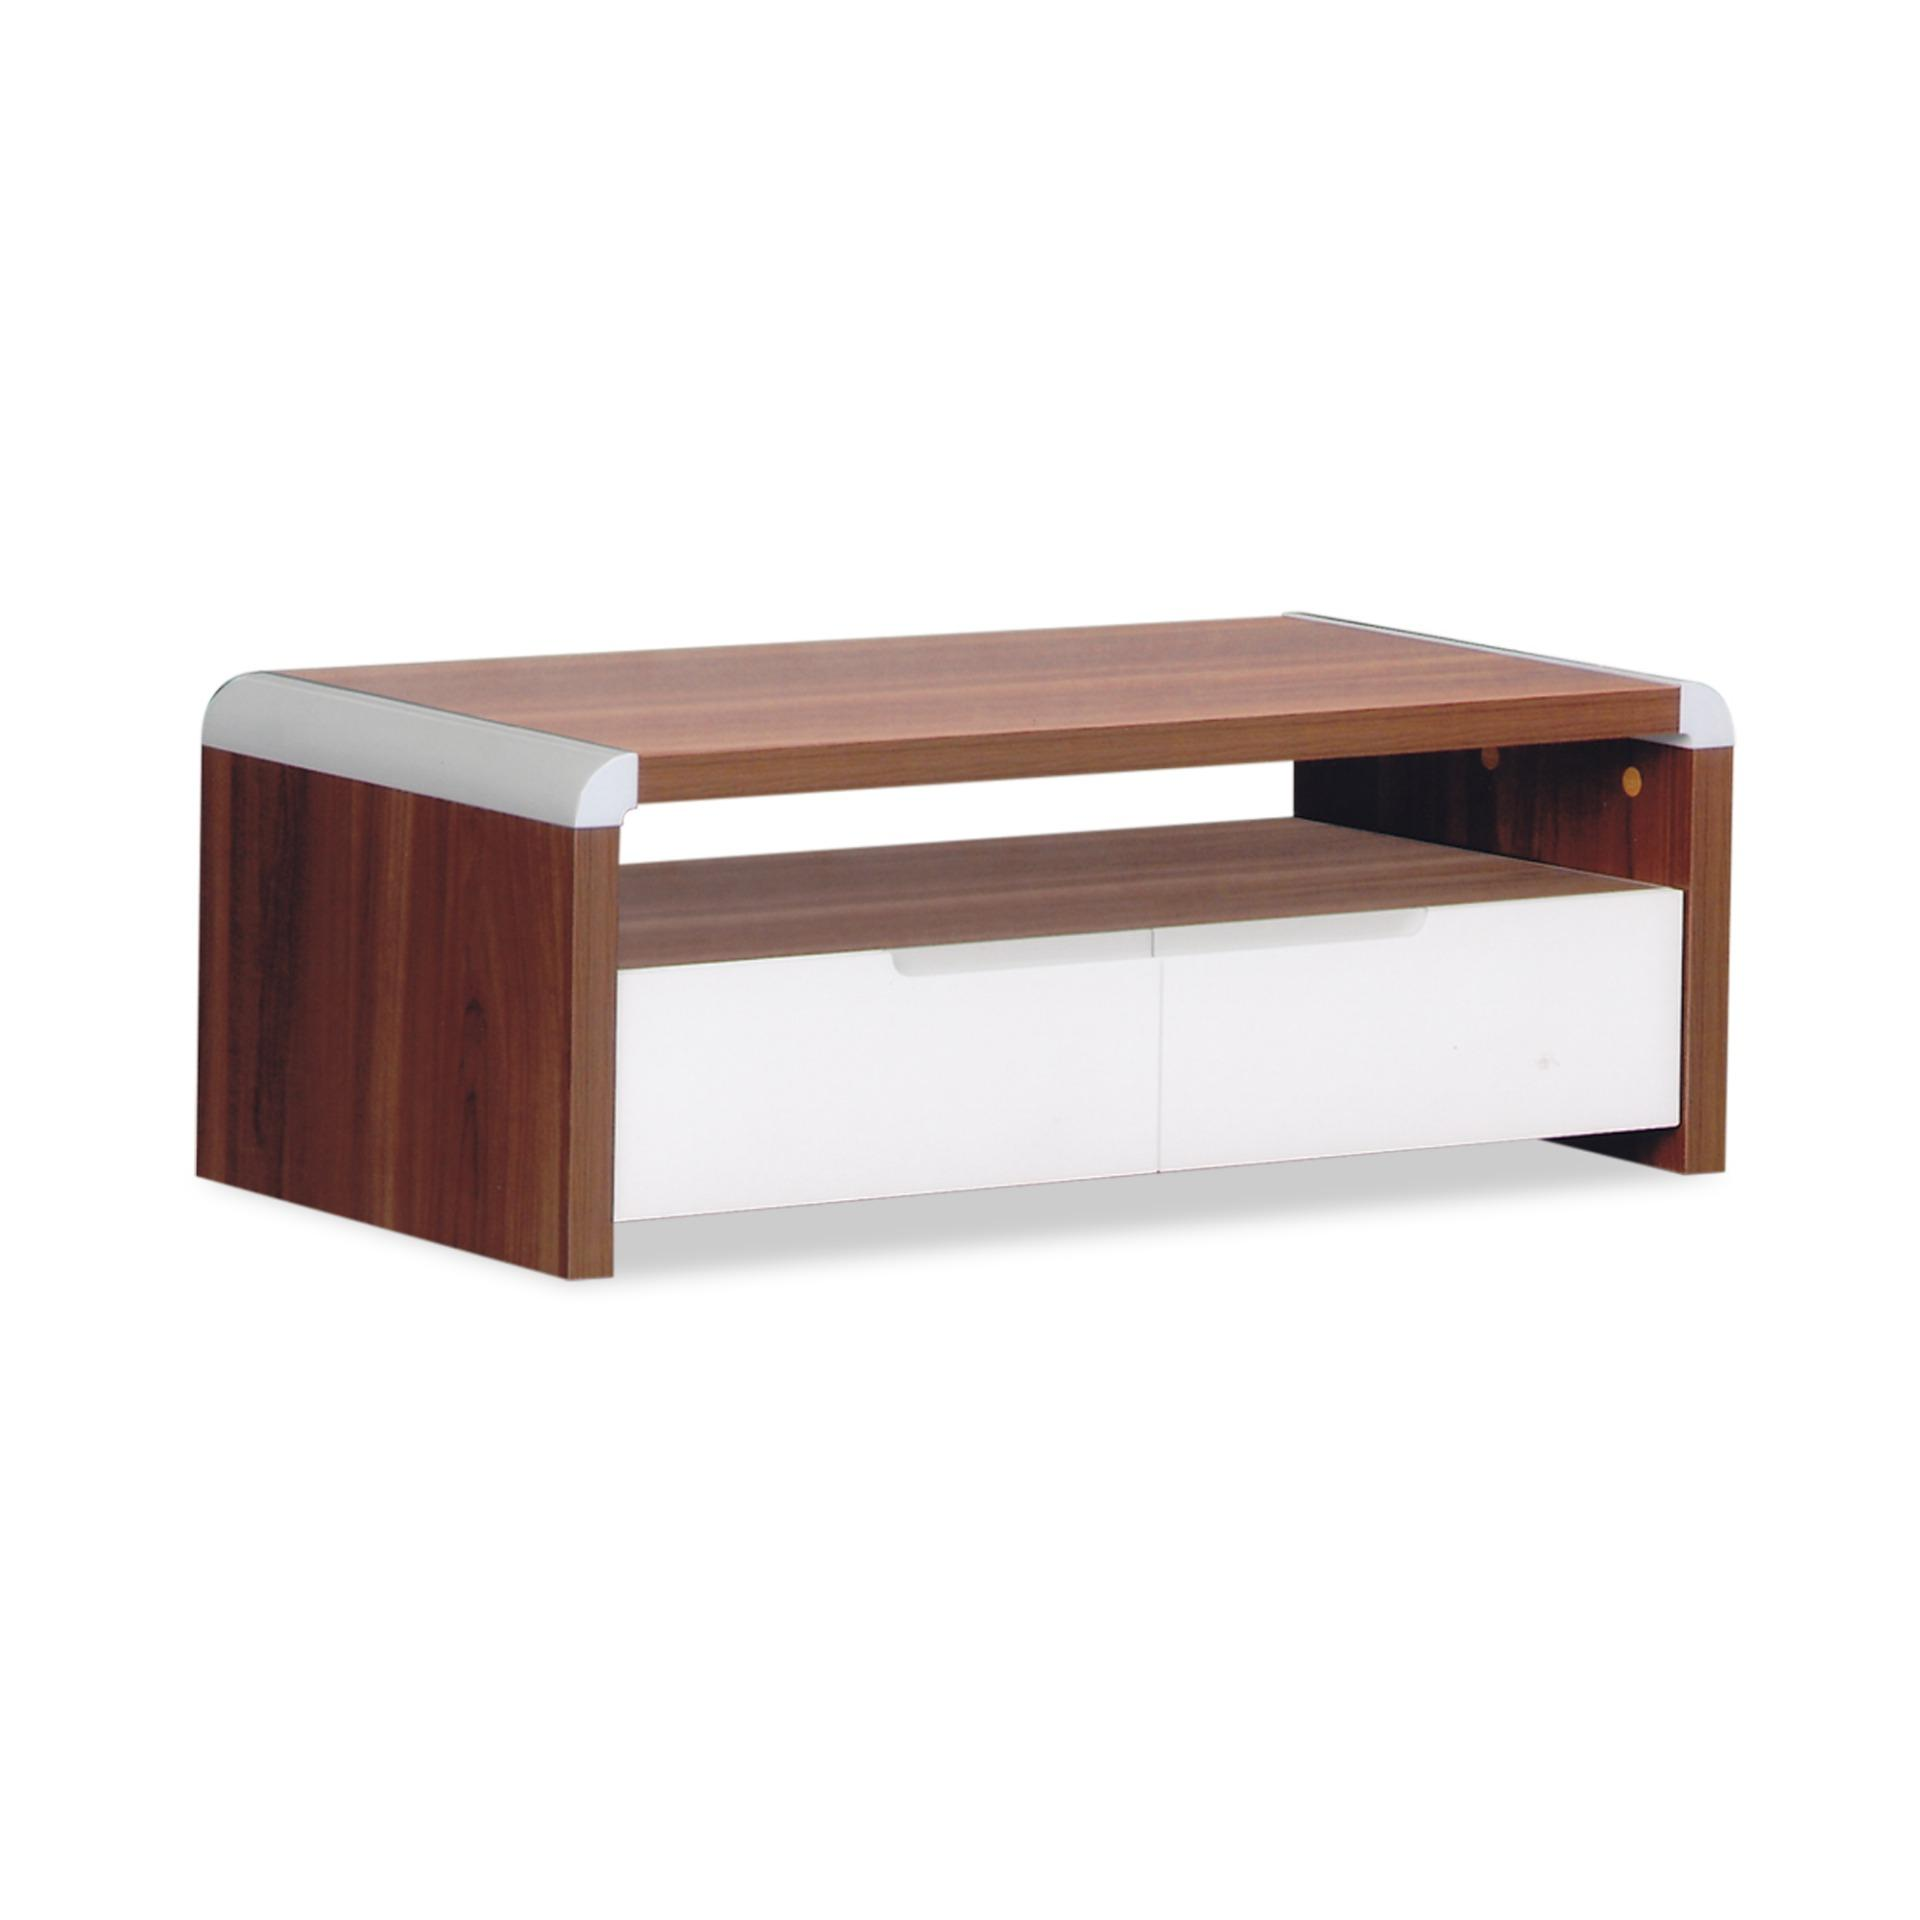 Kobe Coffee Table (FREE DELIVERY)(FREE ASSEMBLY)